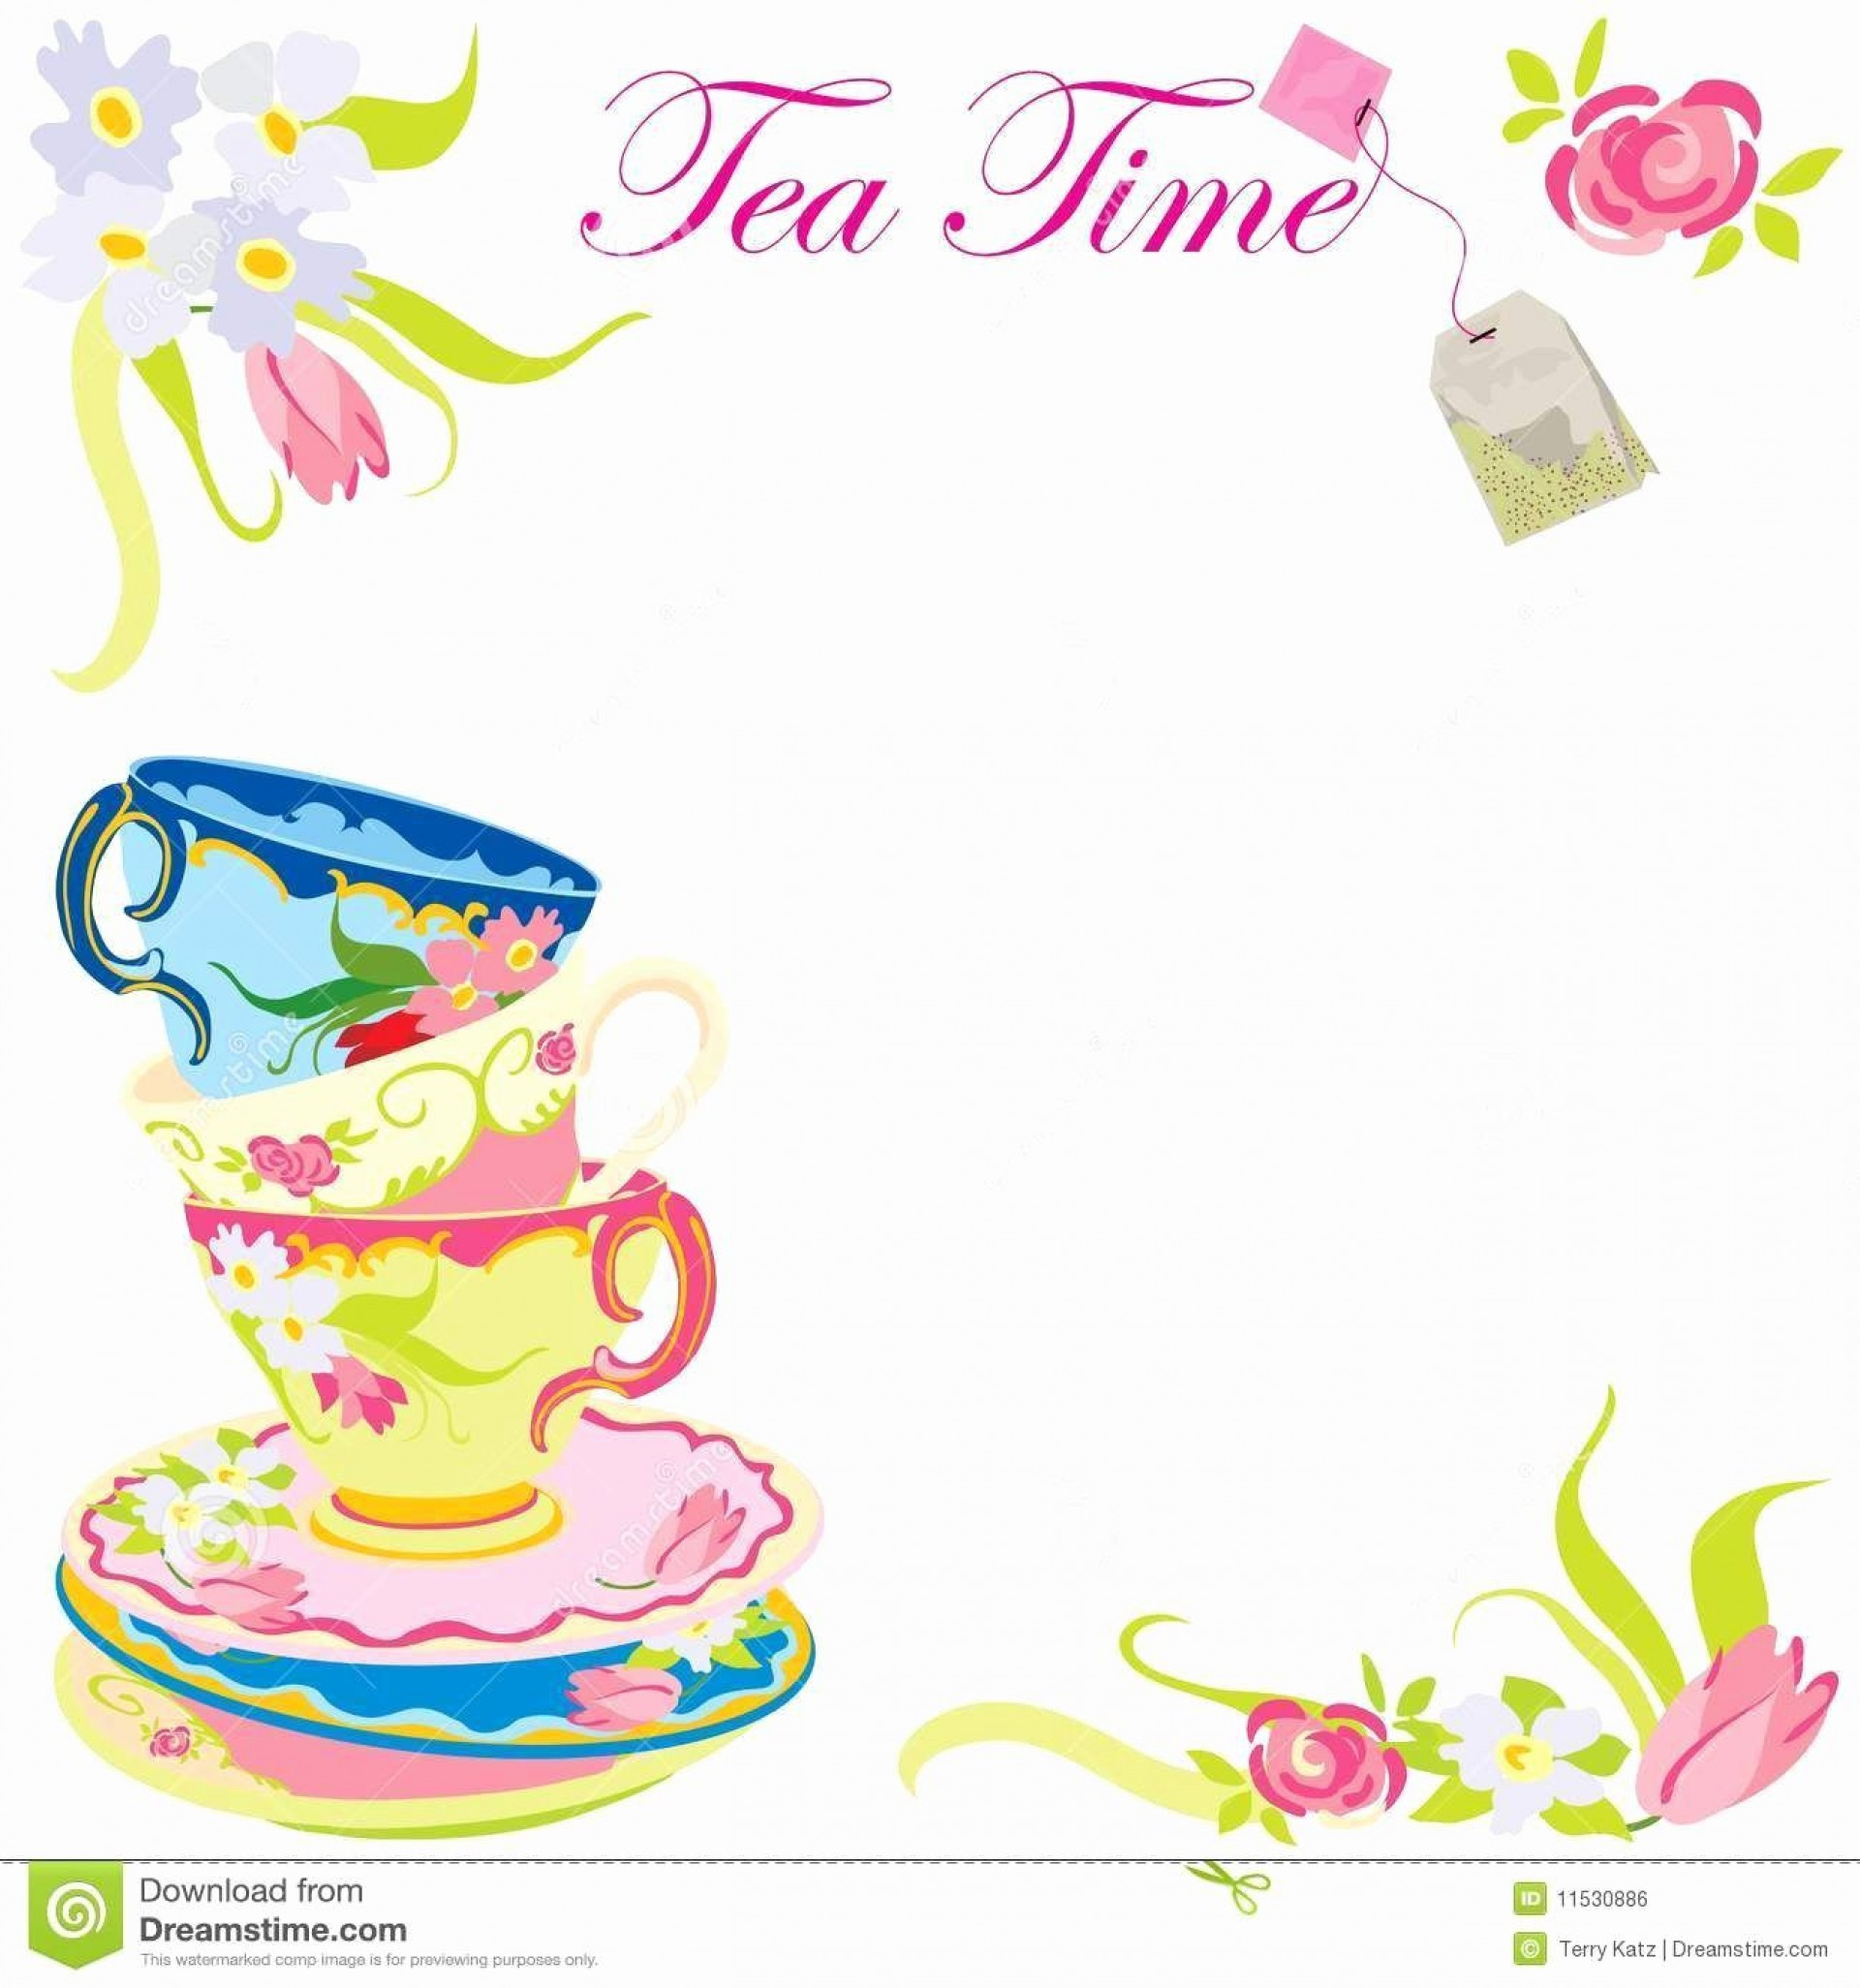 009 Stirring Tea Party Invitation Template Sample  Vintage Free Editable Card Pdf1920